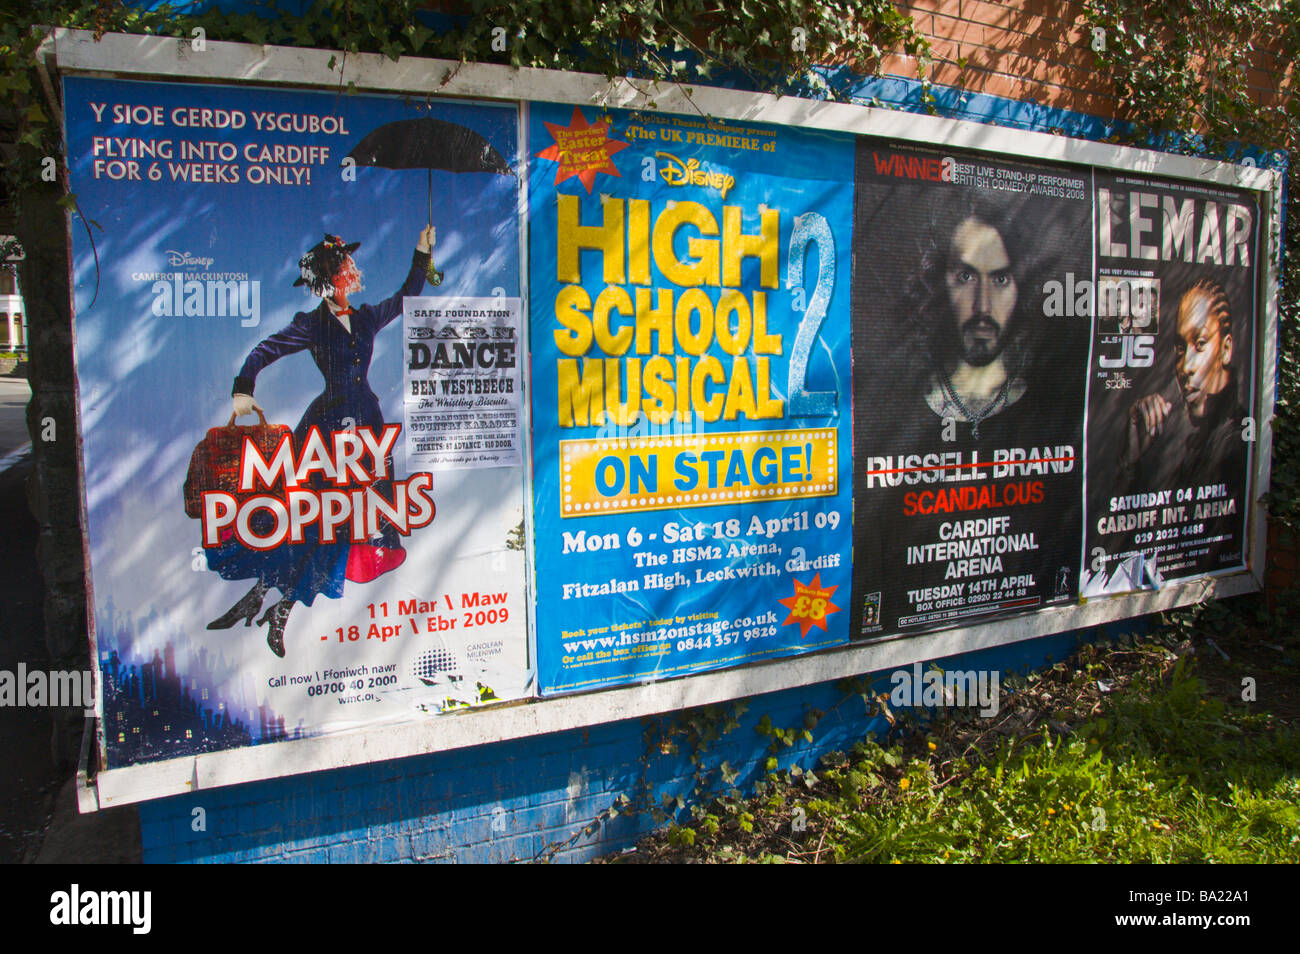 Theatre Posters Stock Photos & Theatre Posters Stock Images - Alamy